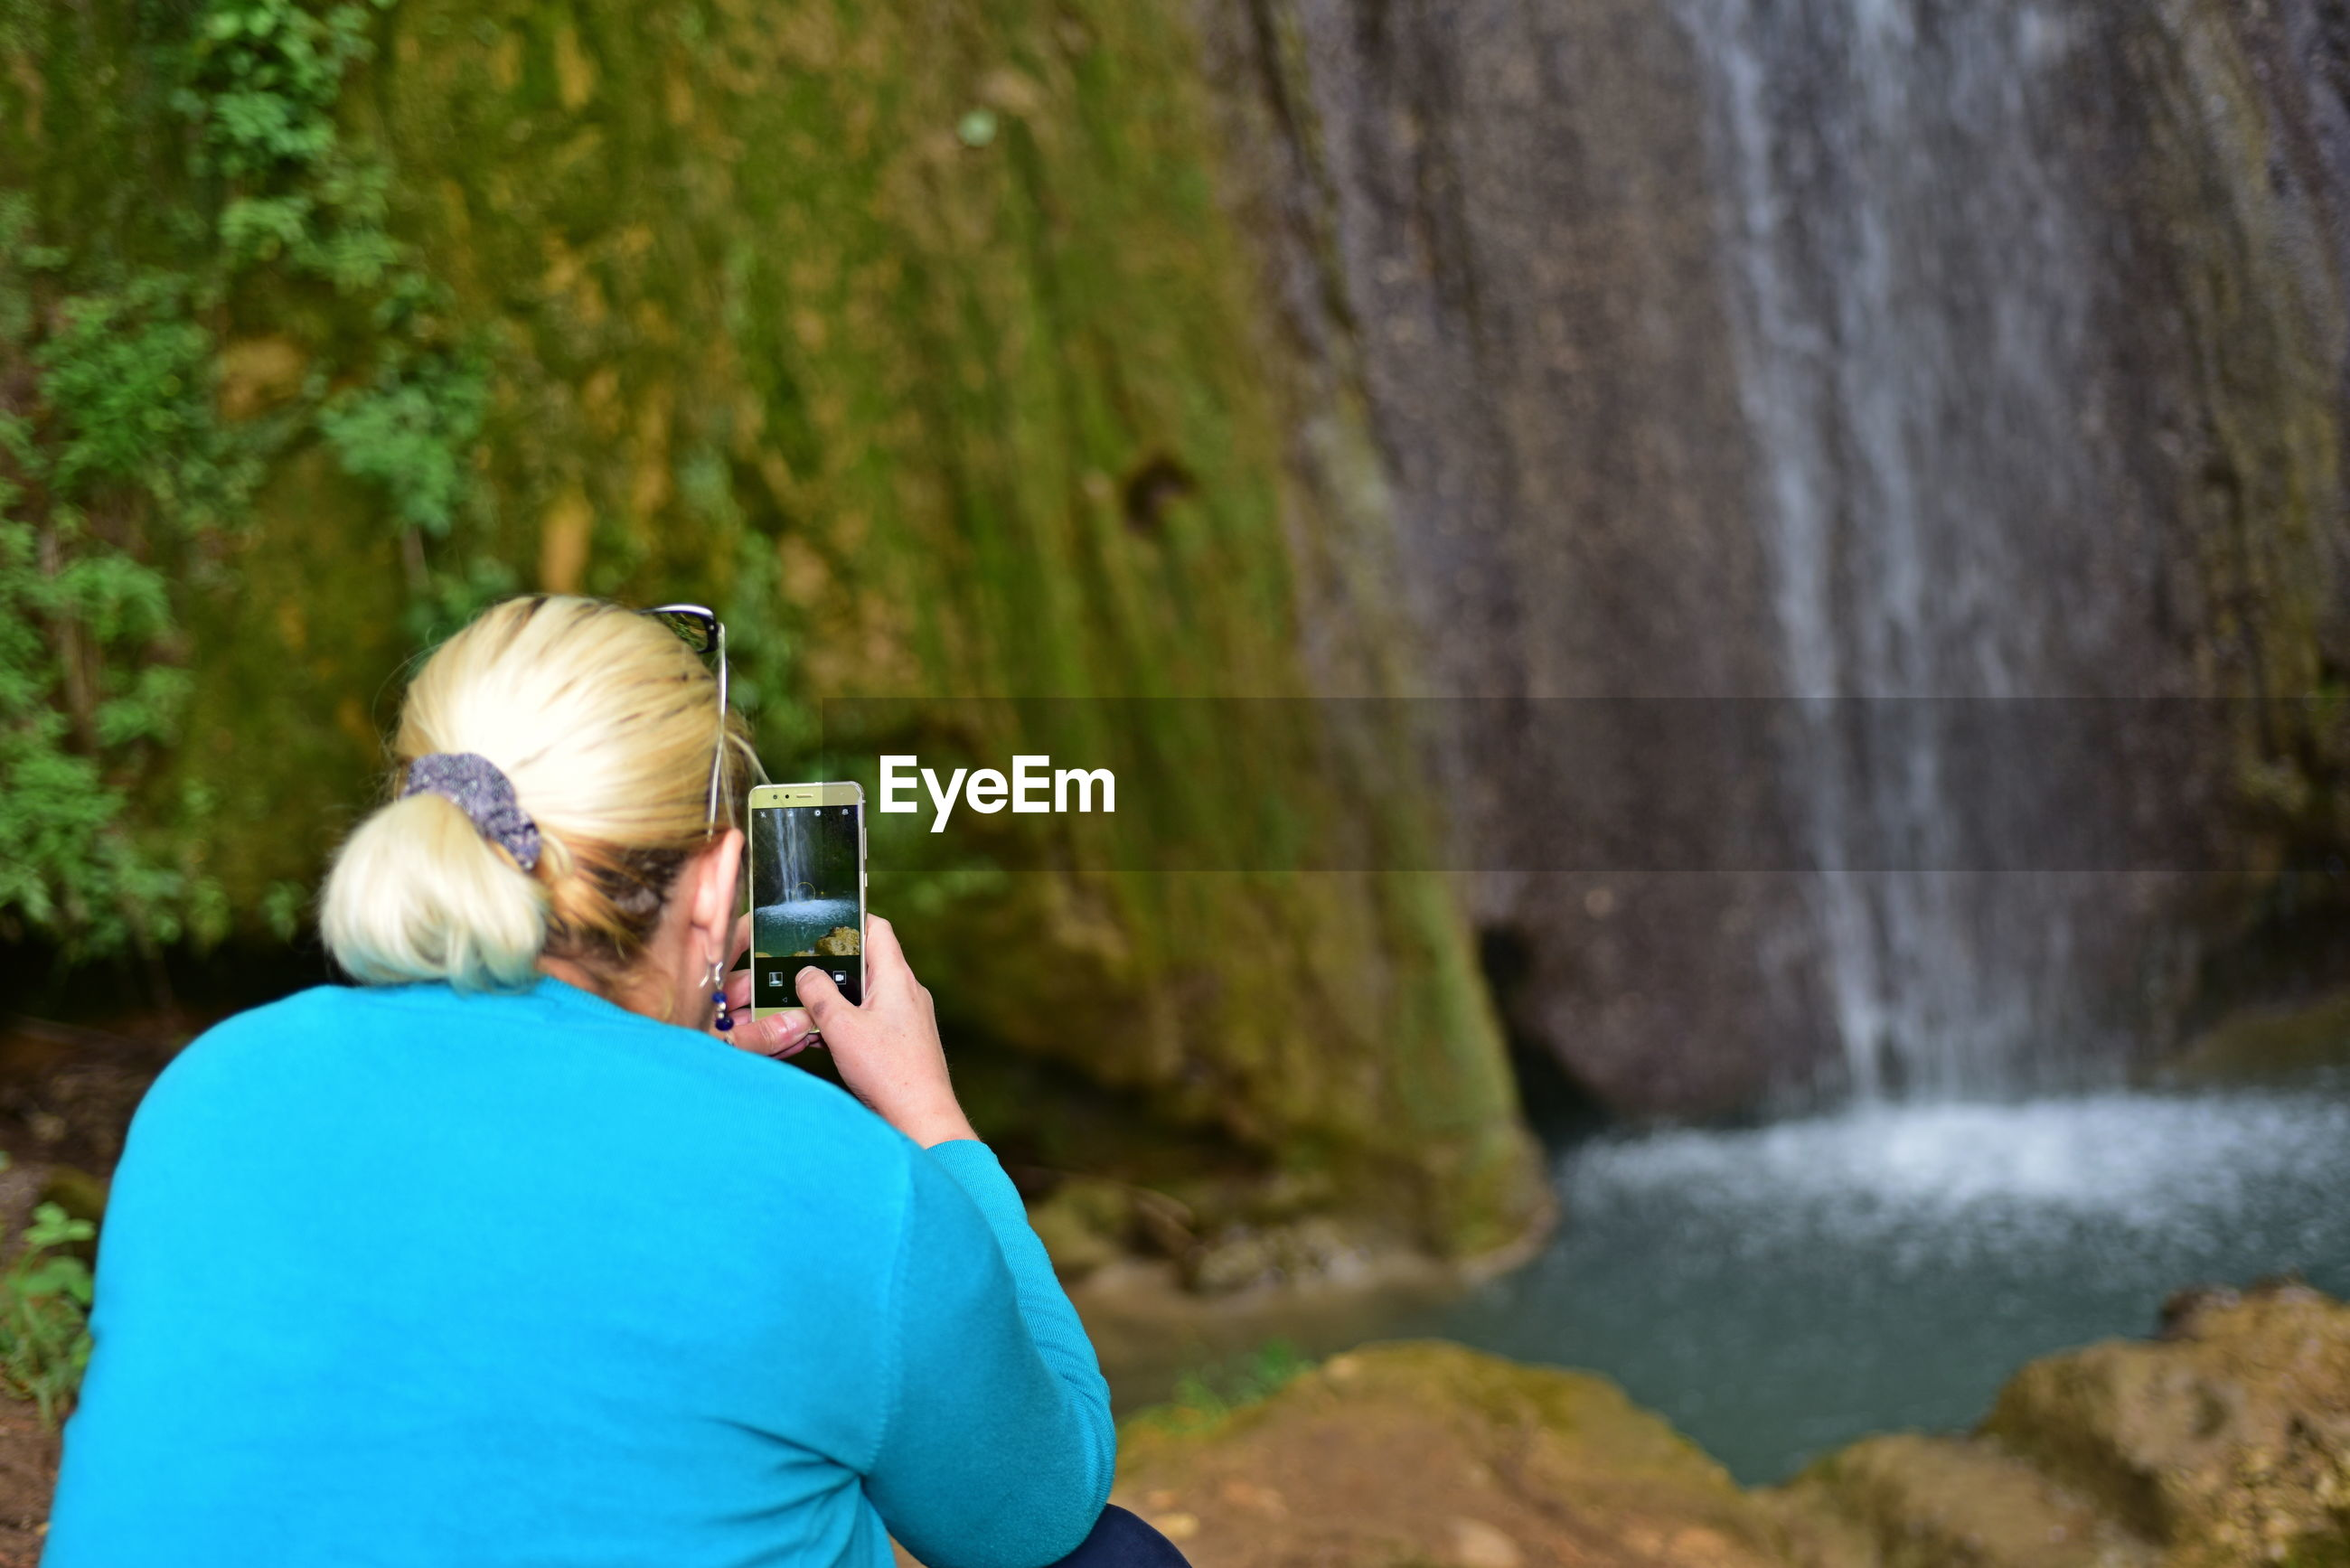 Rear view of woman photographing waterfall with smart phone in forest